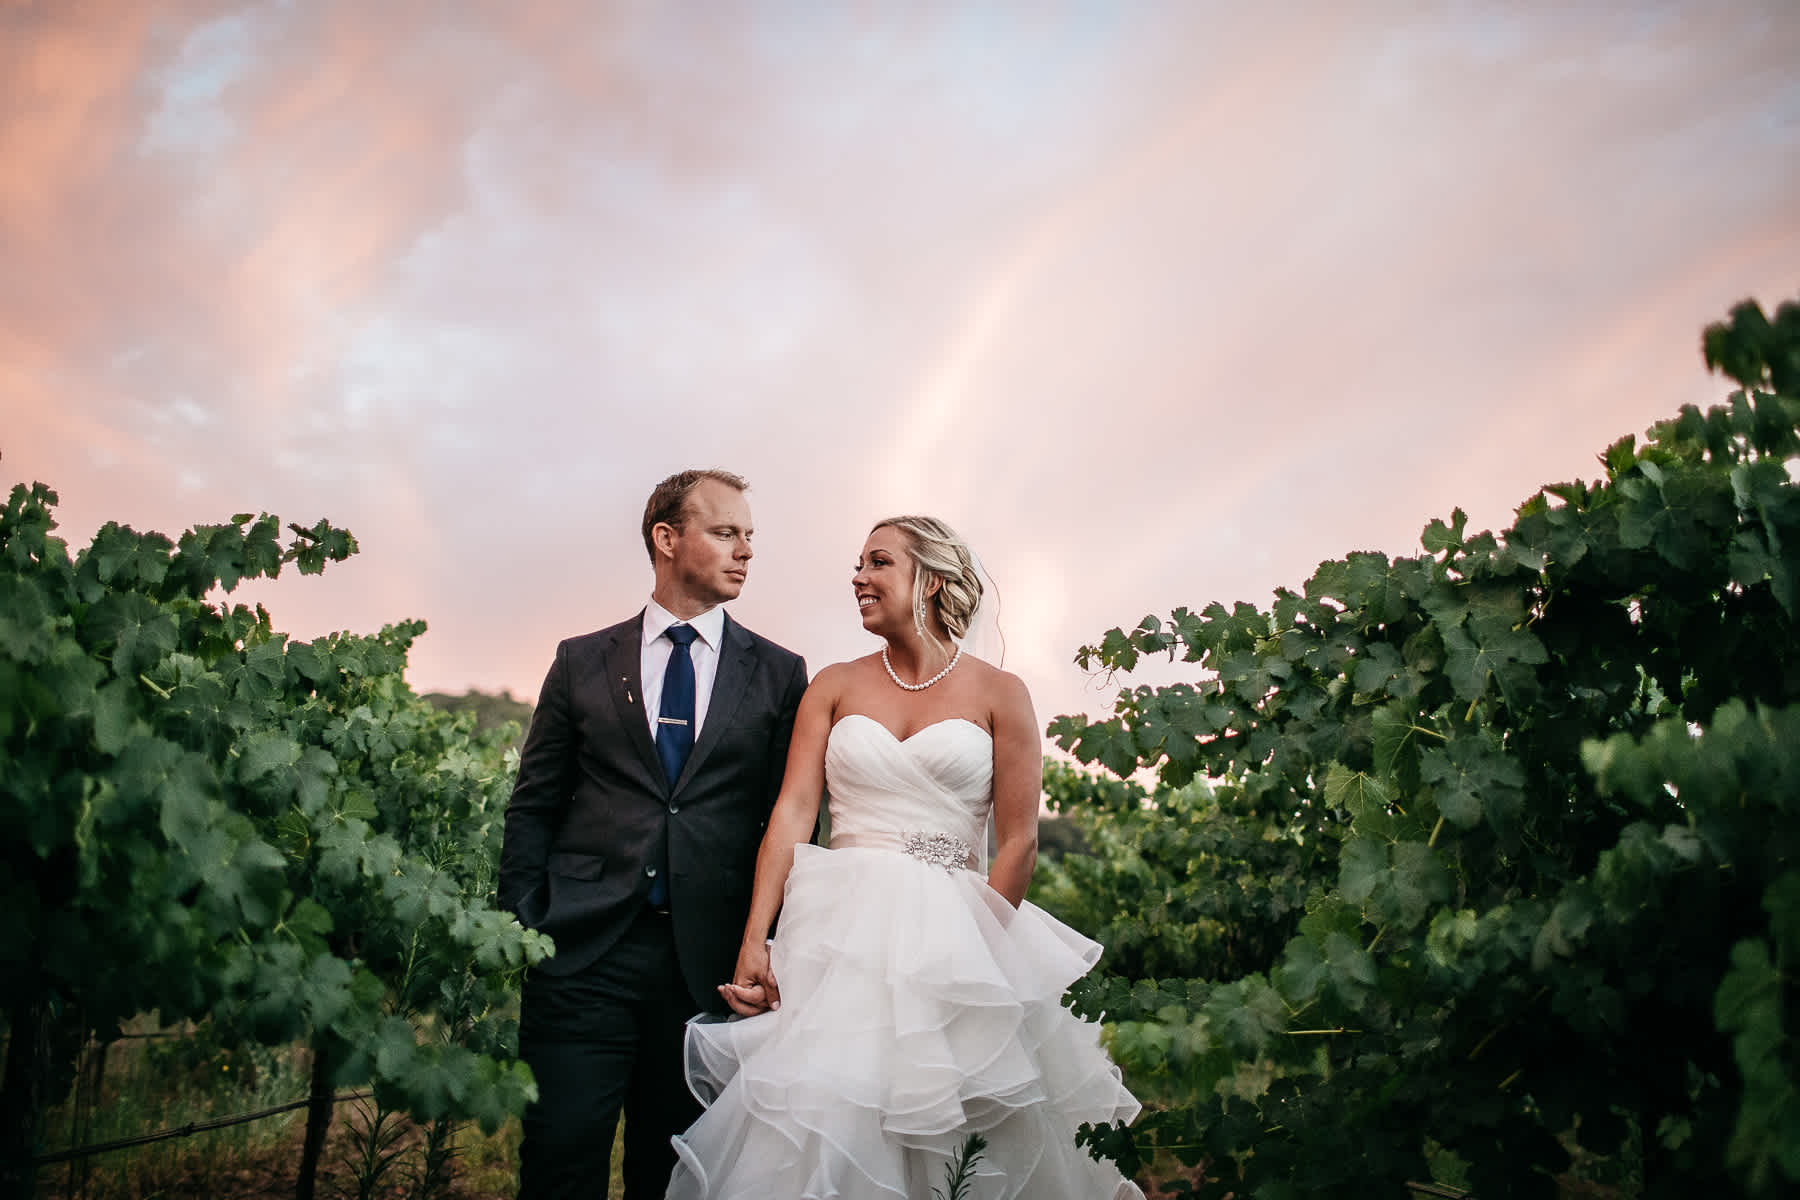 kirigin-cellars-gilroy-summer-sunset-wedding-88